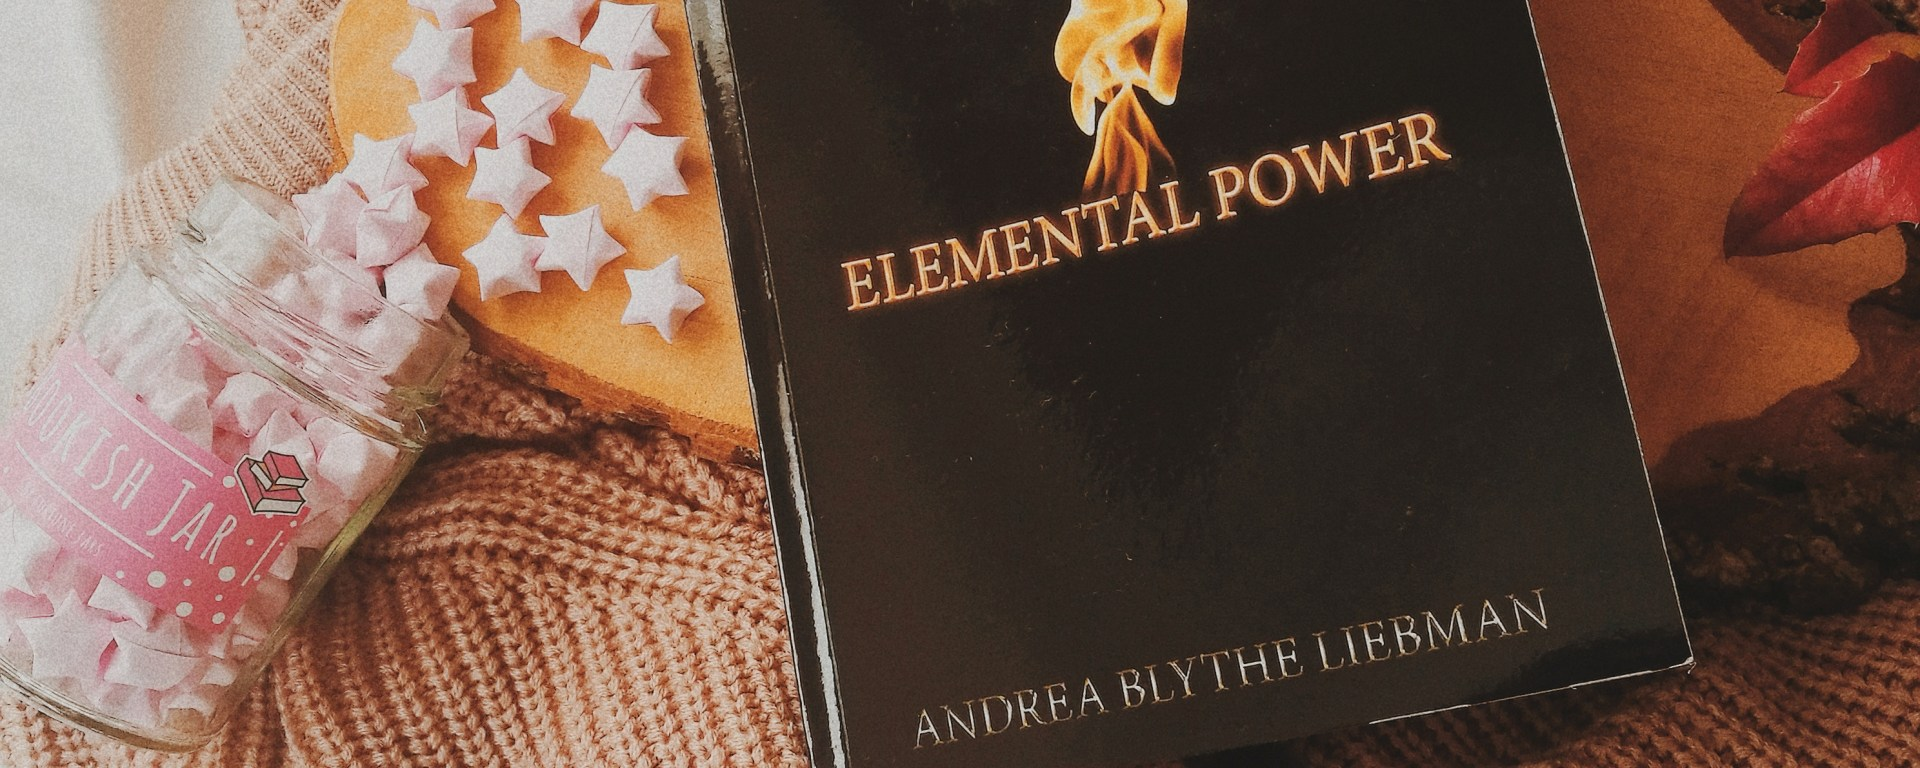 Elemental power featured on an open page book. A review on the sequel of young power by missmaddychats